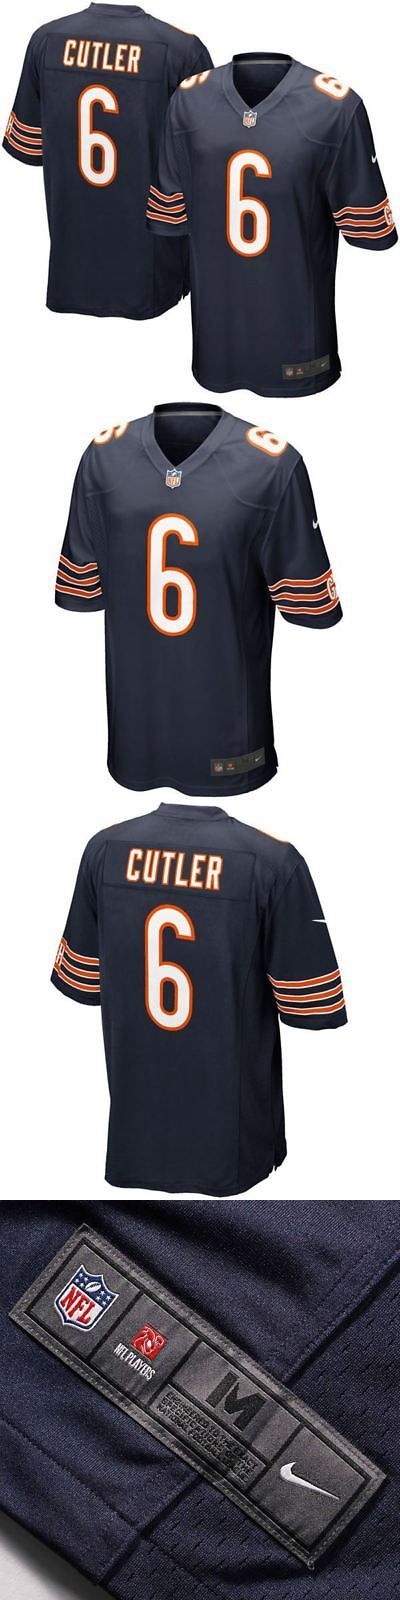 Youth 159111: Chicago Bears Jersey Jay Cutler #6 Nike Youth Game Replica Nfl Navy -> BUY IT NOW ONLY: $75 on eBay!